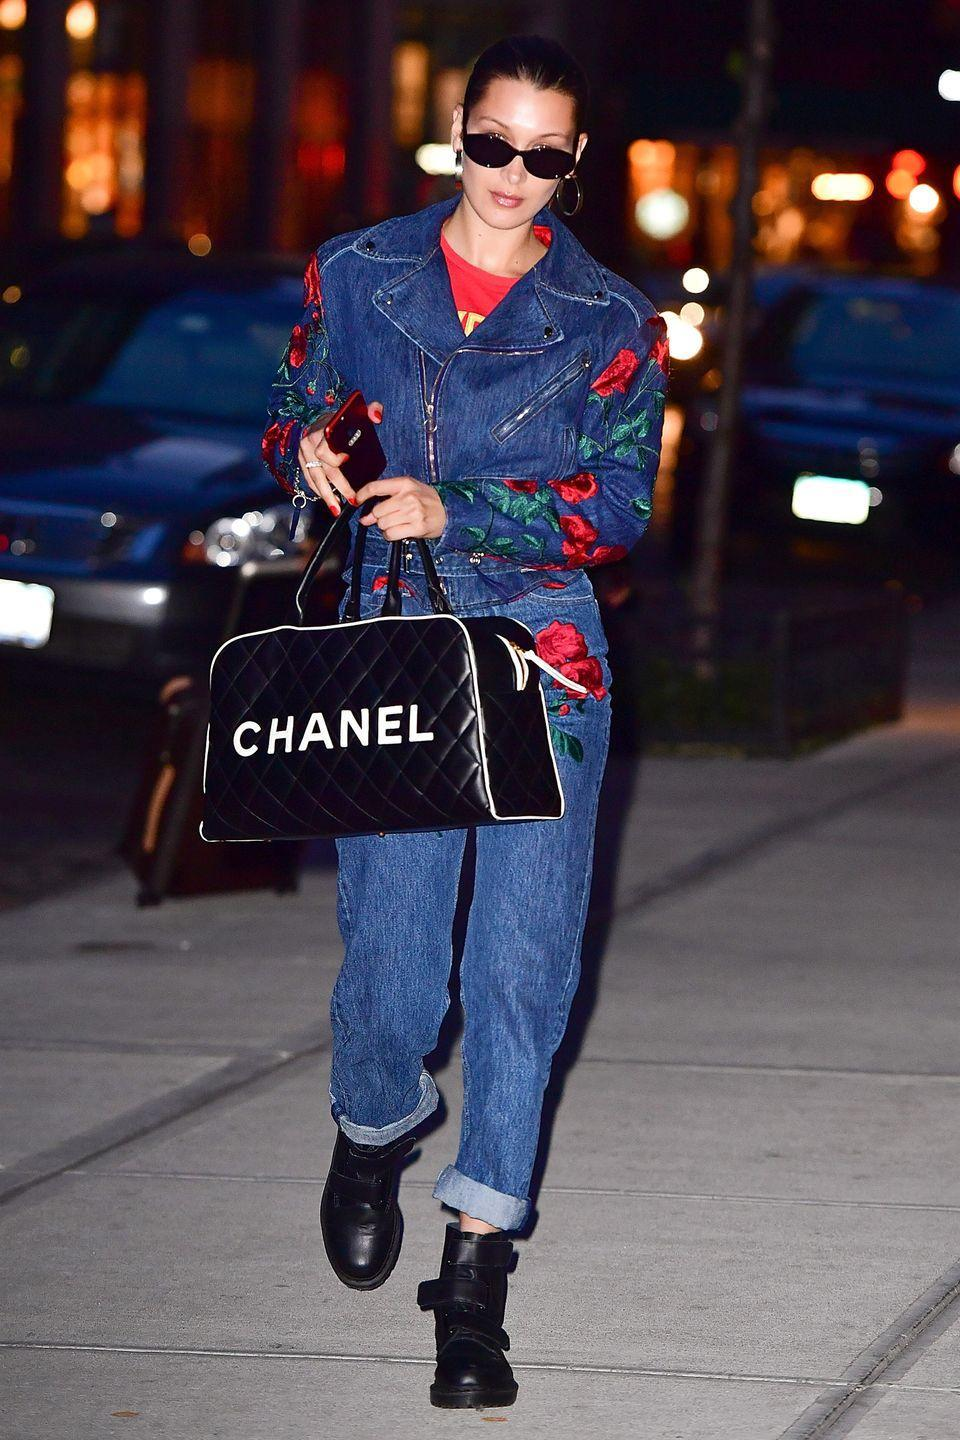 <p>In red t-shirt under an embroidered Adam Selman moto jacket with matching jeans, a Chanel duffel bag, Dr. Martens boots and black sunglasses while out in New York City. </p>